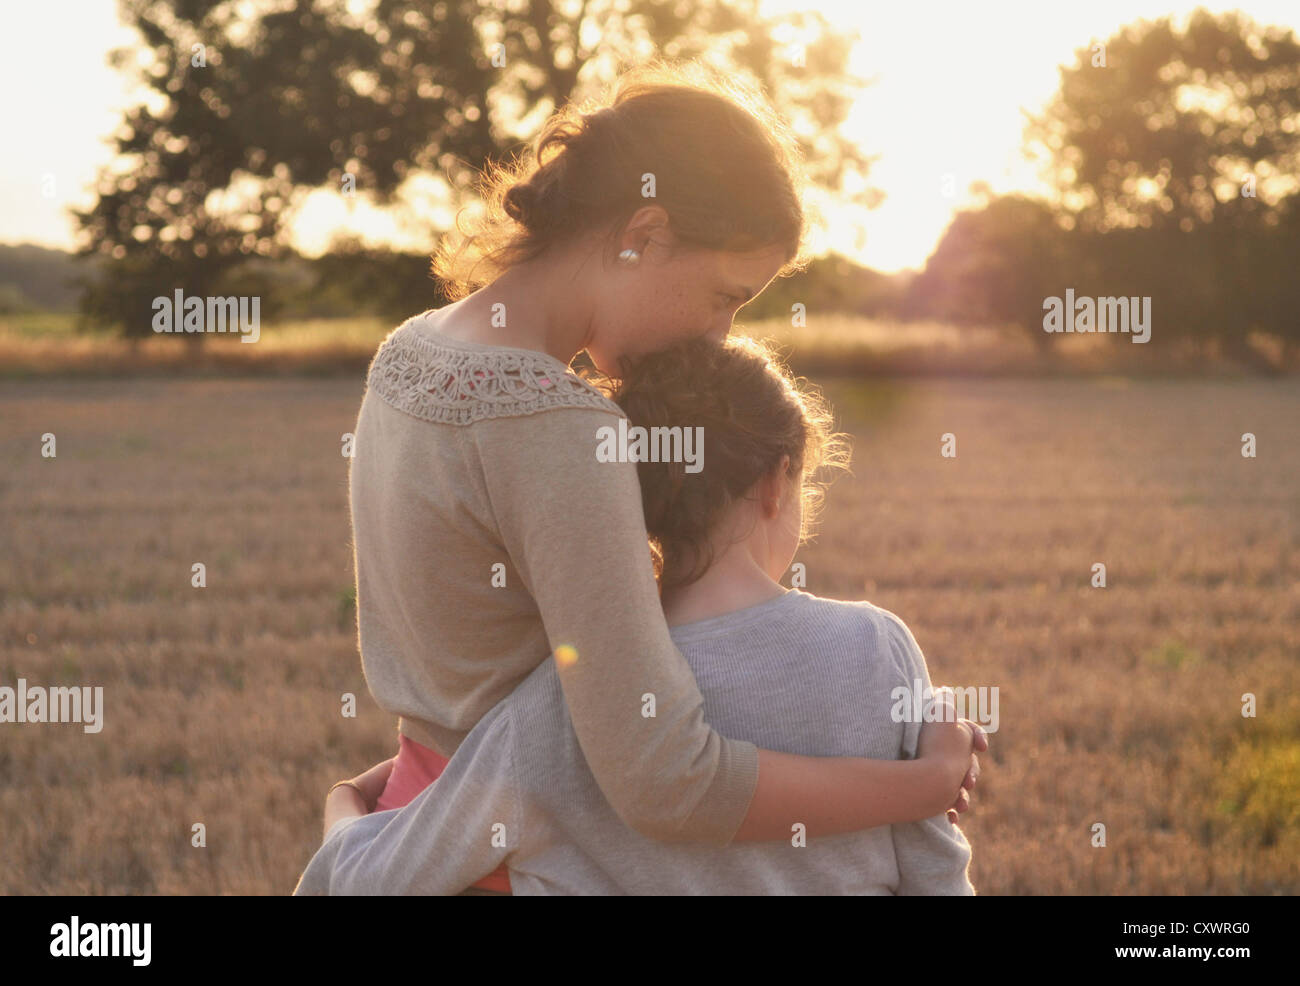 Mother and daughter hugging in field - Stock Image